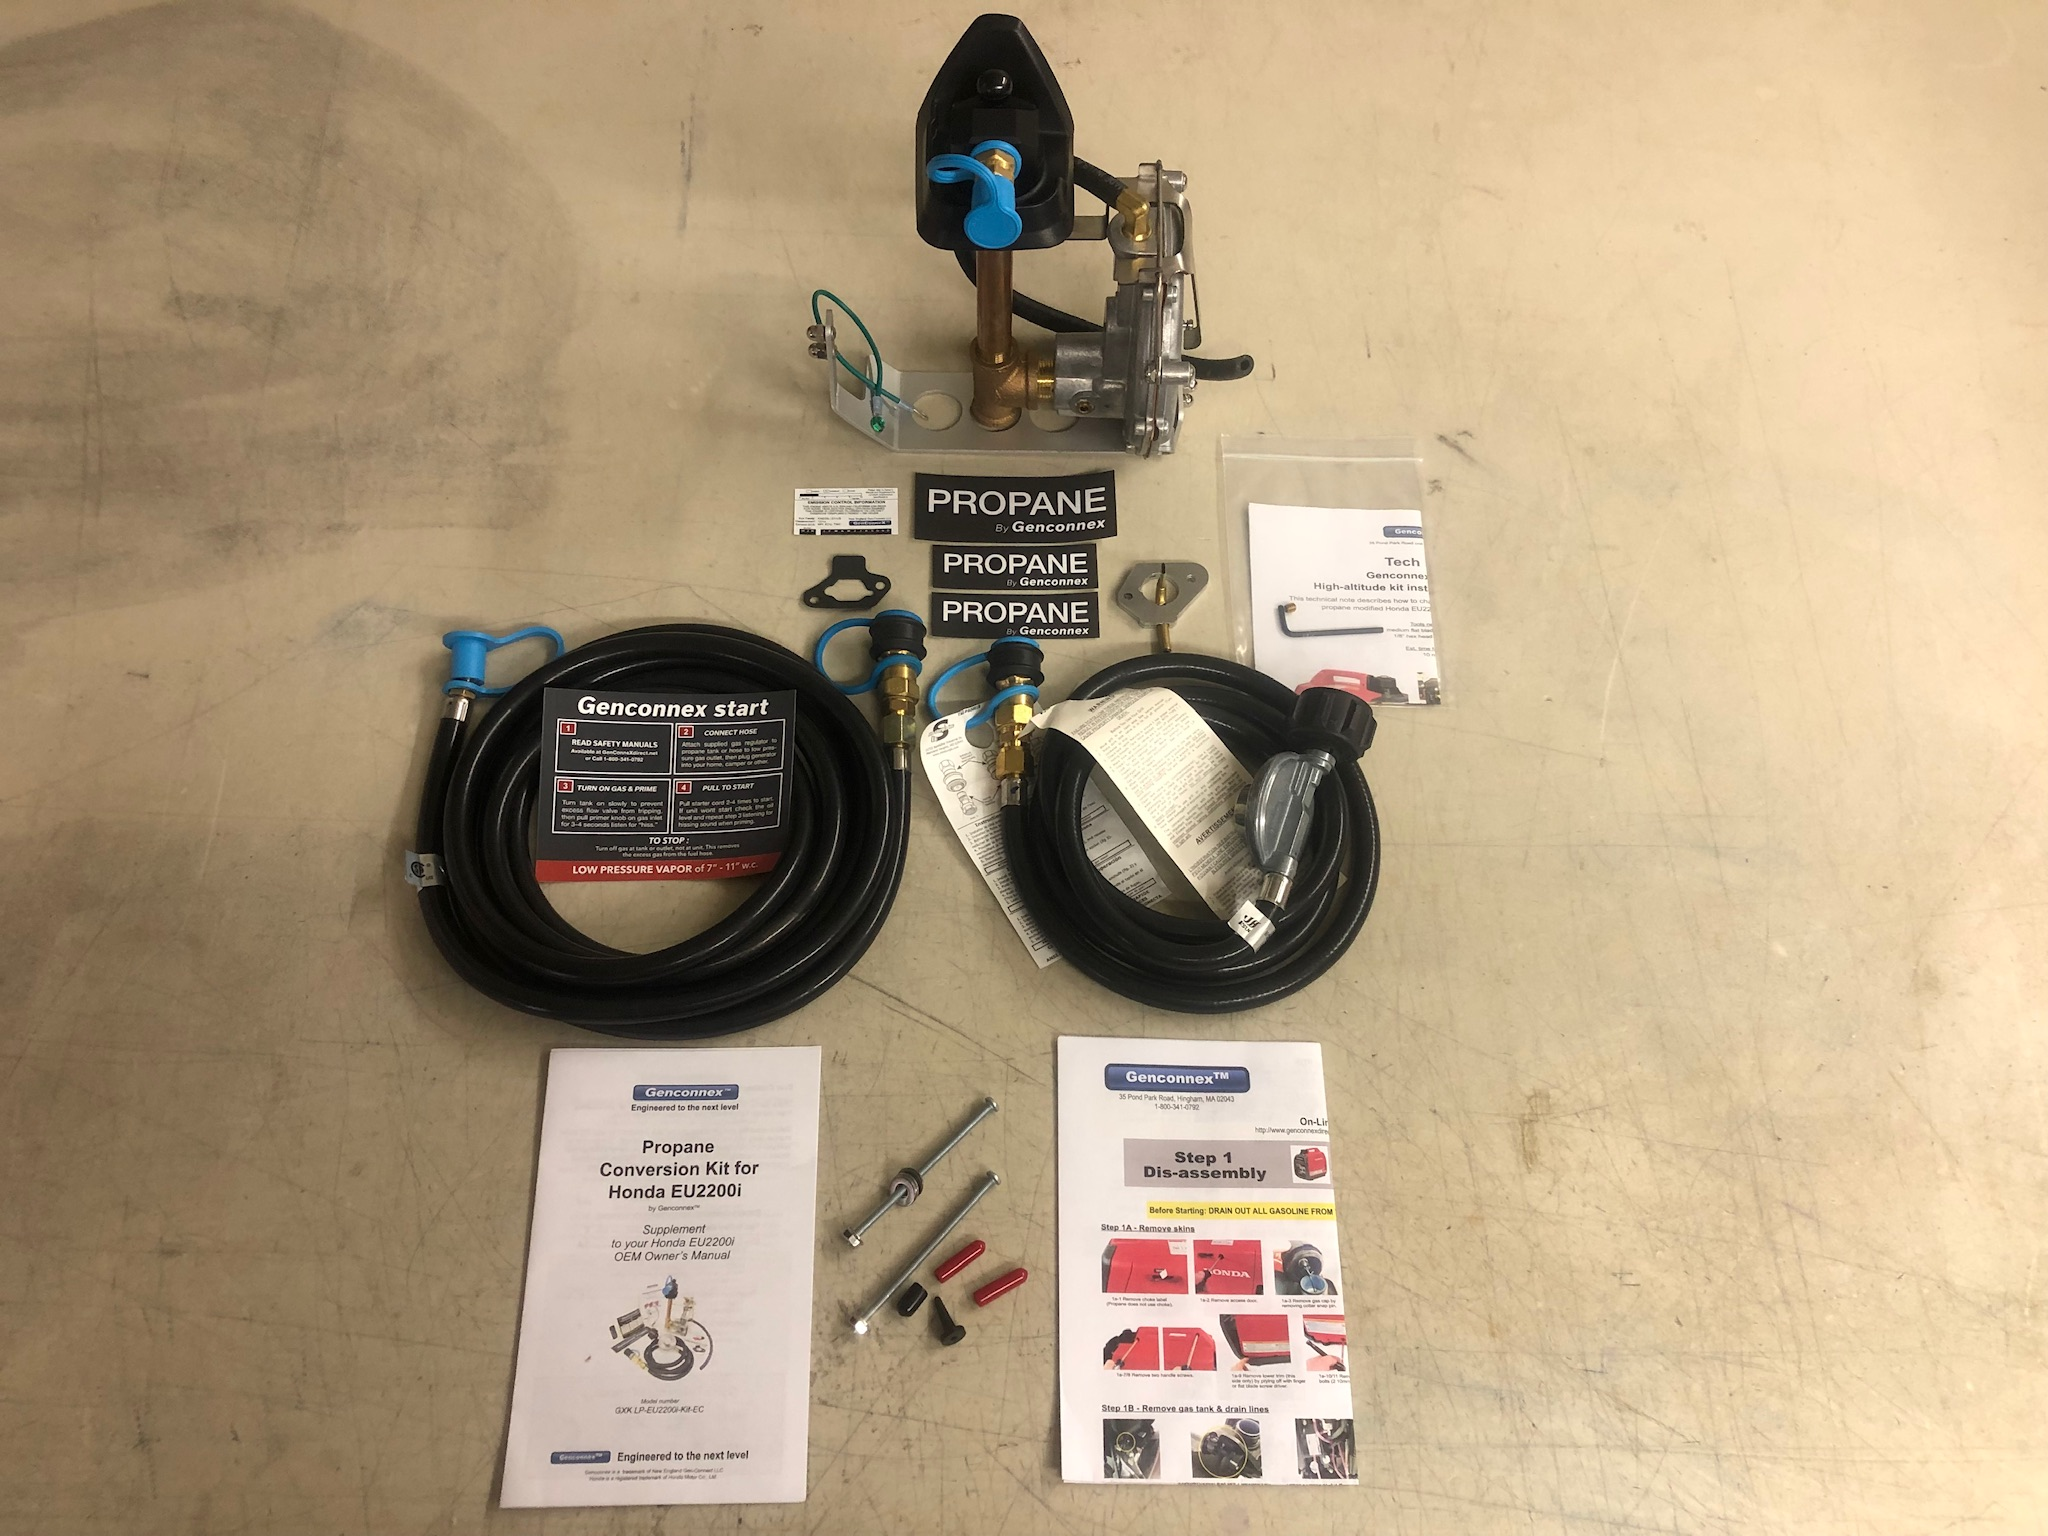 parts included in Genconnex kit